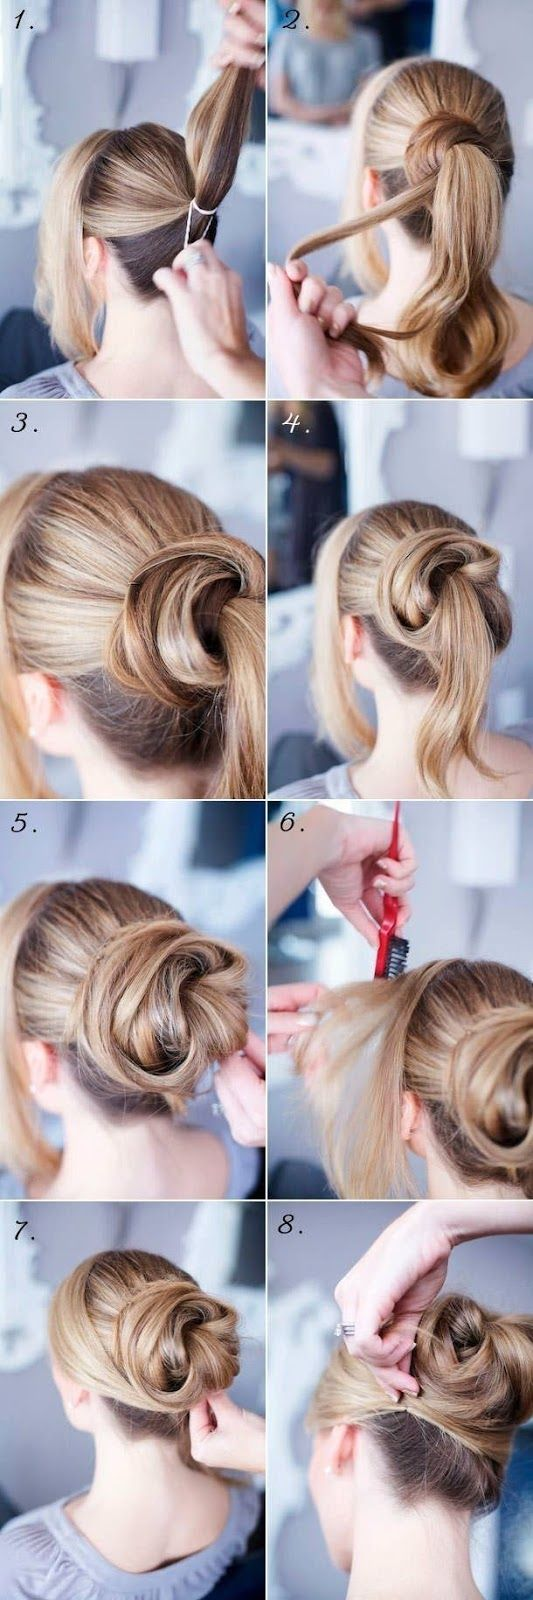 Winter Hairstyles Tutorials to Rock this Season - Motivational Trends